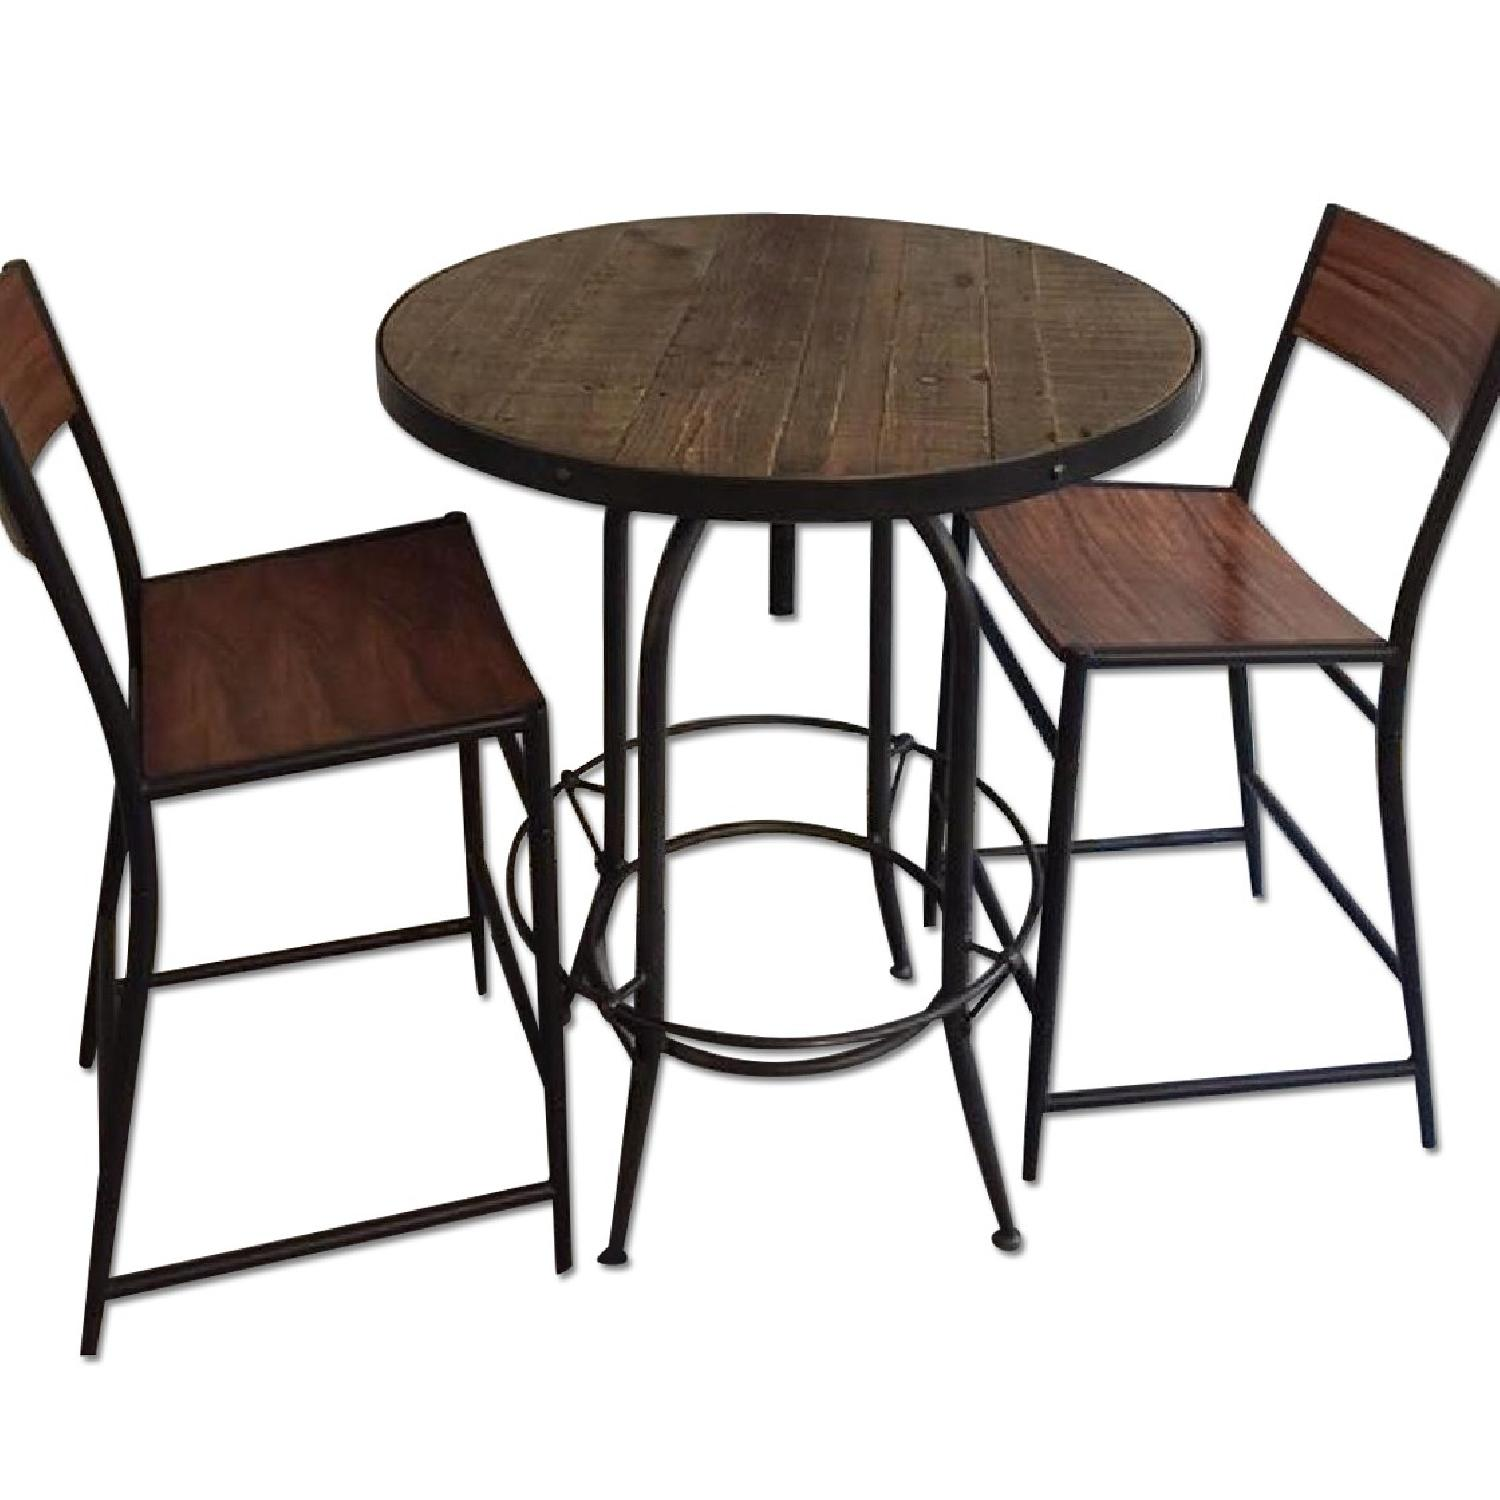 West Elm Table w/ 2 Chairs - image-0